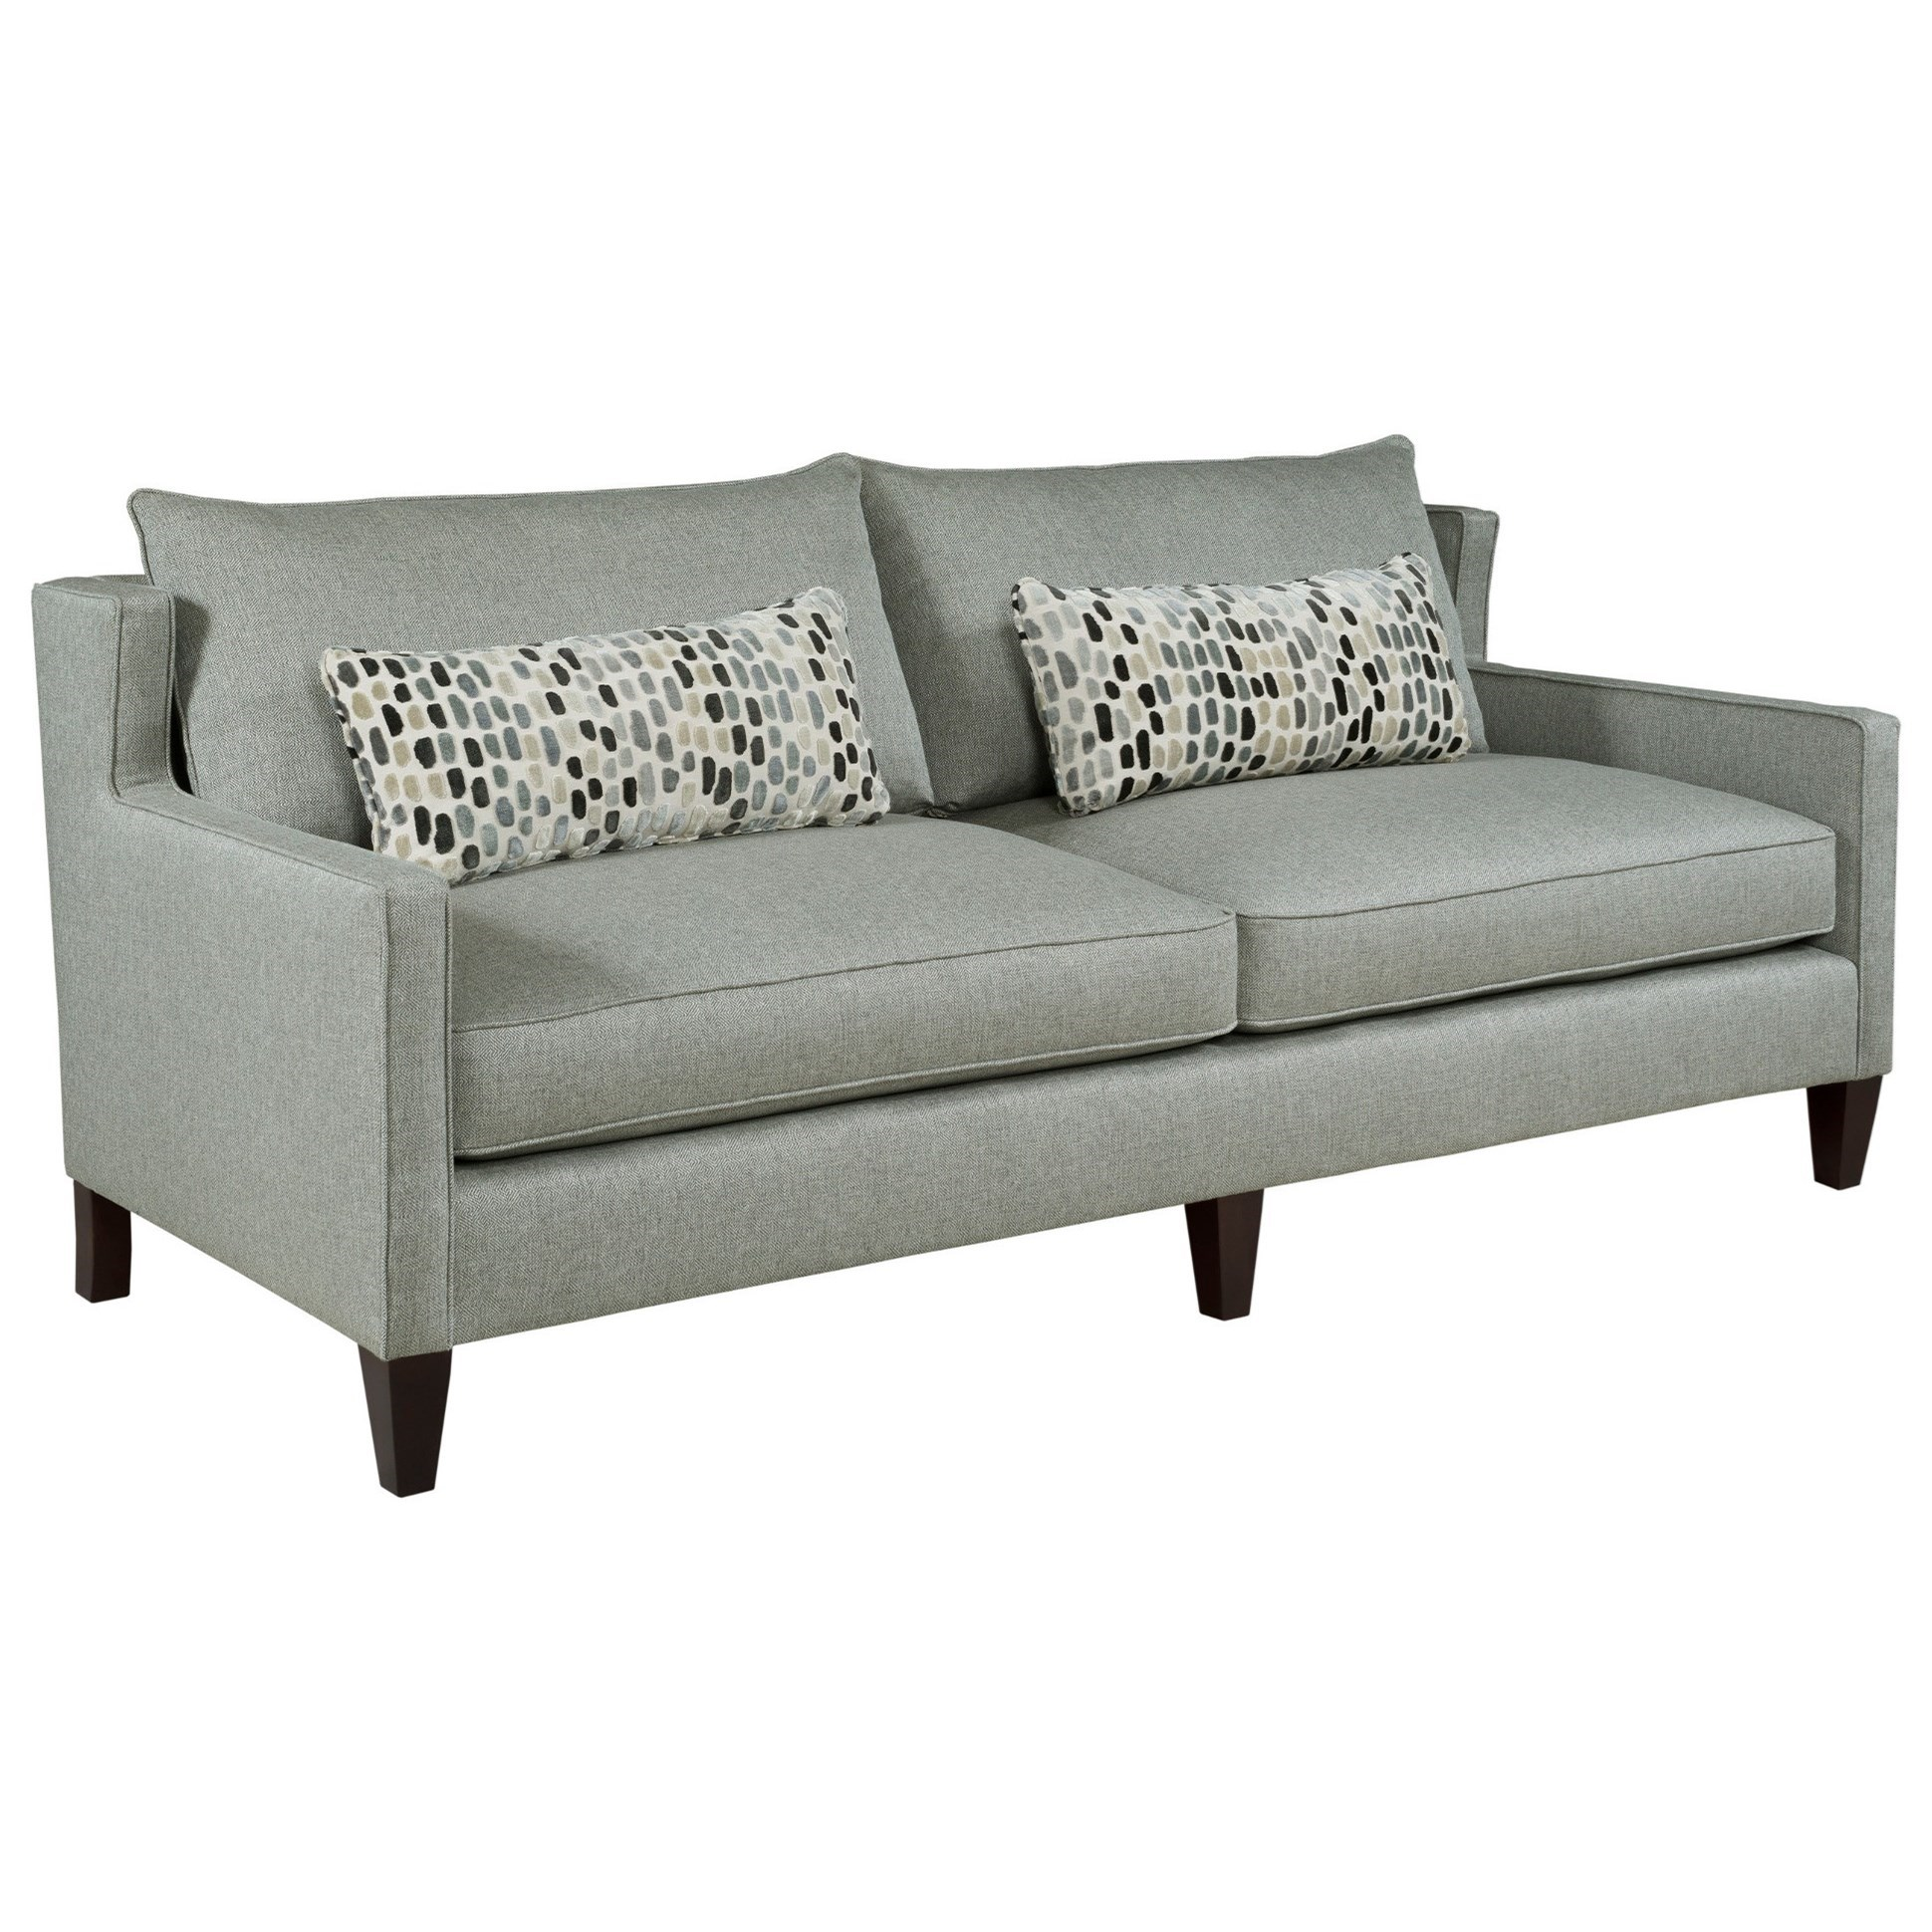 Alta Sofa by Kincaid Furniture at Adcock Furniture